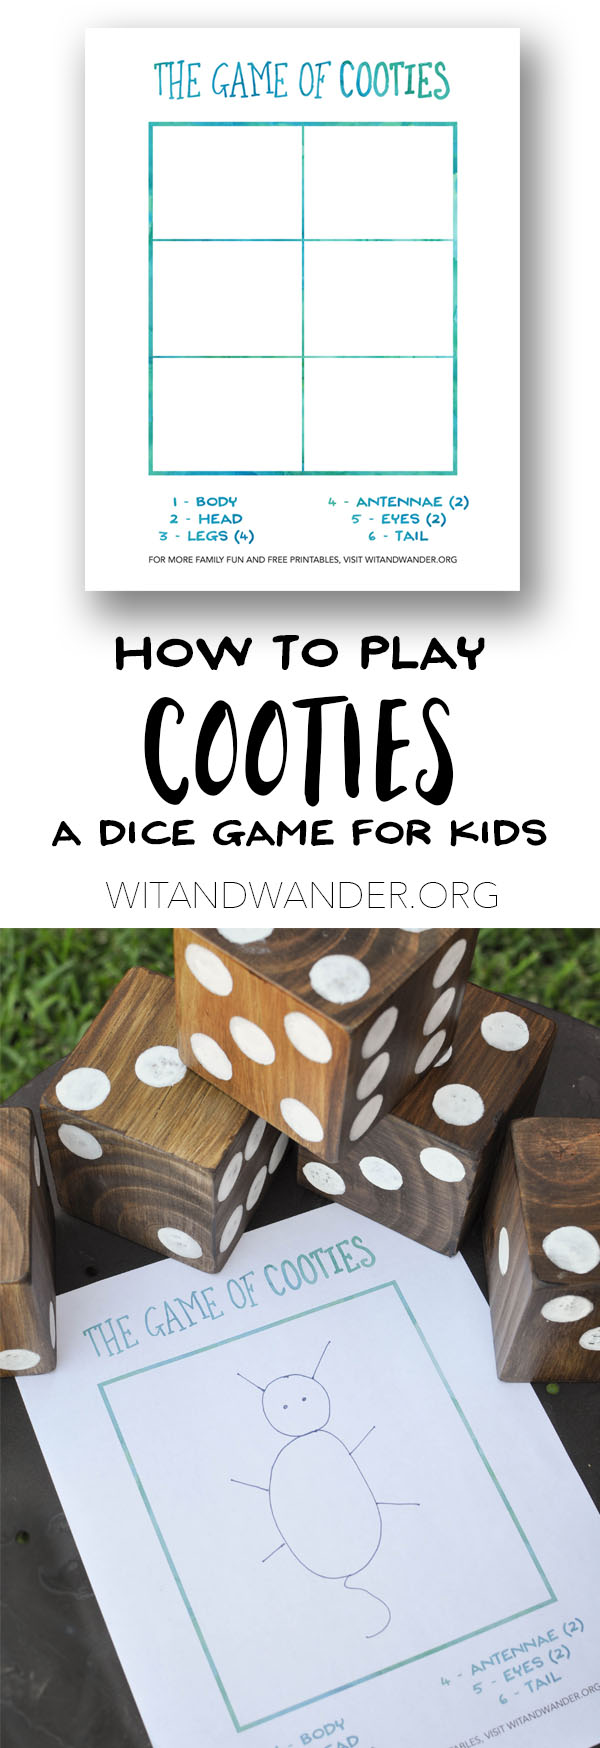 DIY Backyard Games and Free Printable Cooties Game